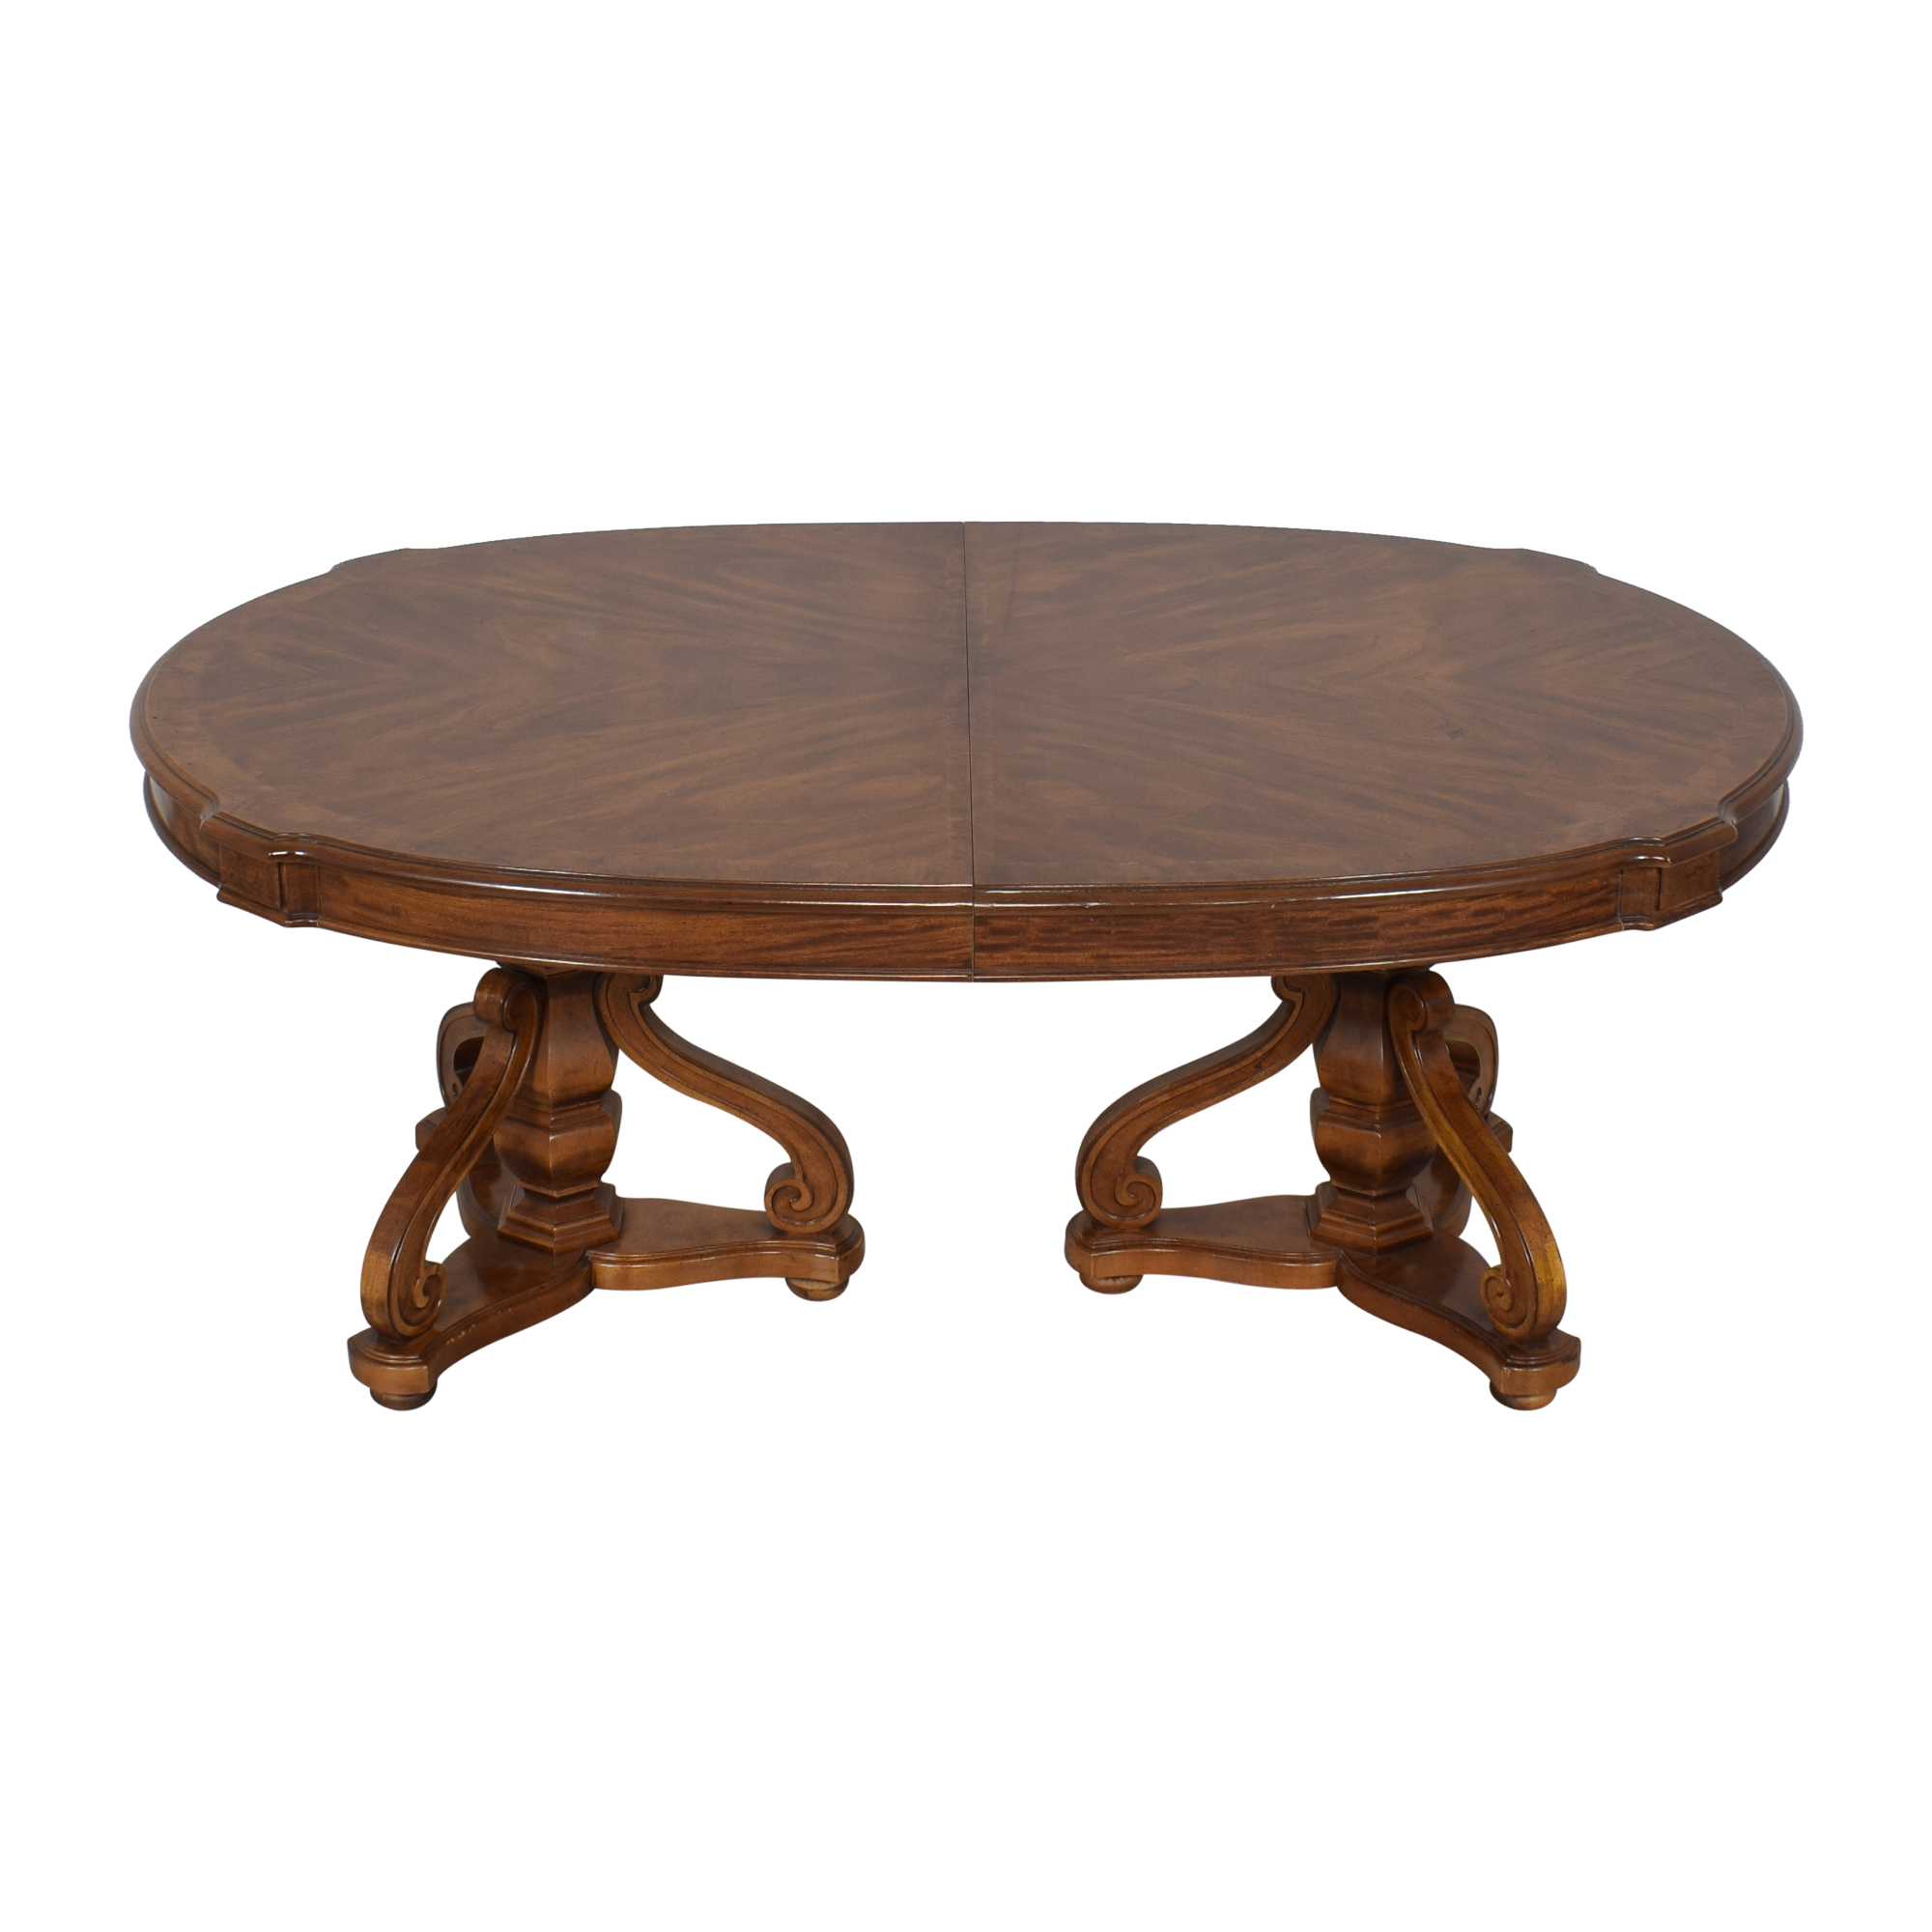 Thomasville Extension Dining Table / Dinner Tables